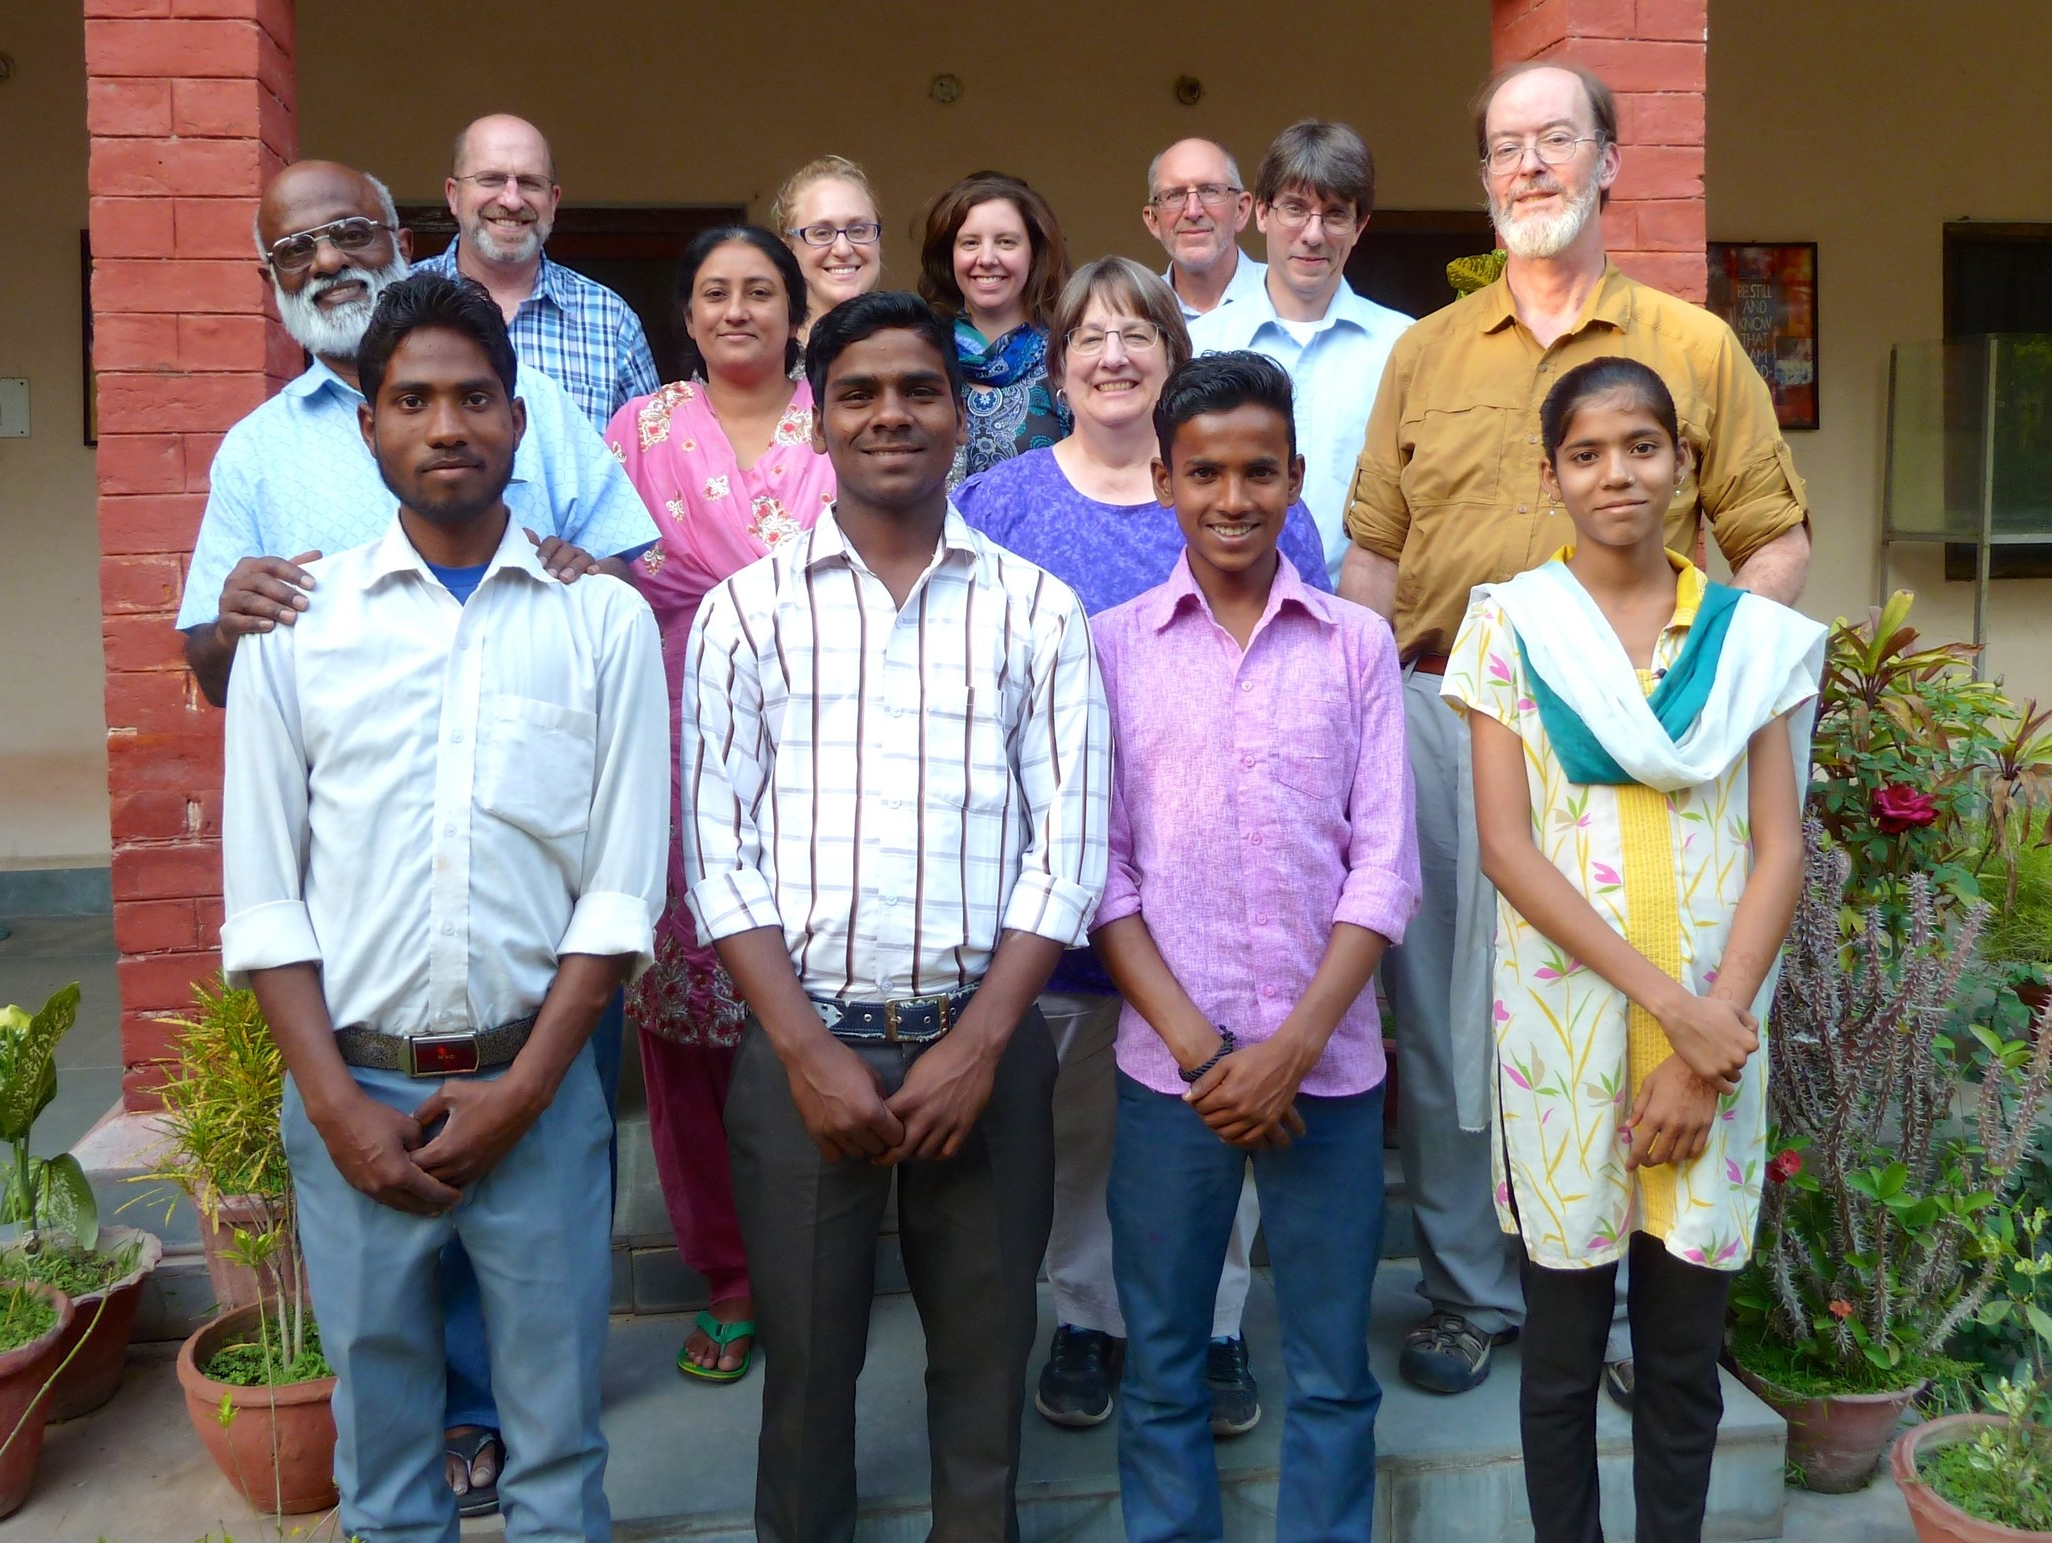 Dr, Audrey Barker (back, center) with USA staff of HIT and India staff and students of Kachhwa Christian Hospital.  Kachhwa, India, March 2017